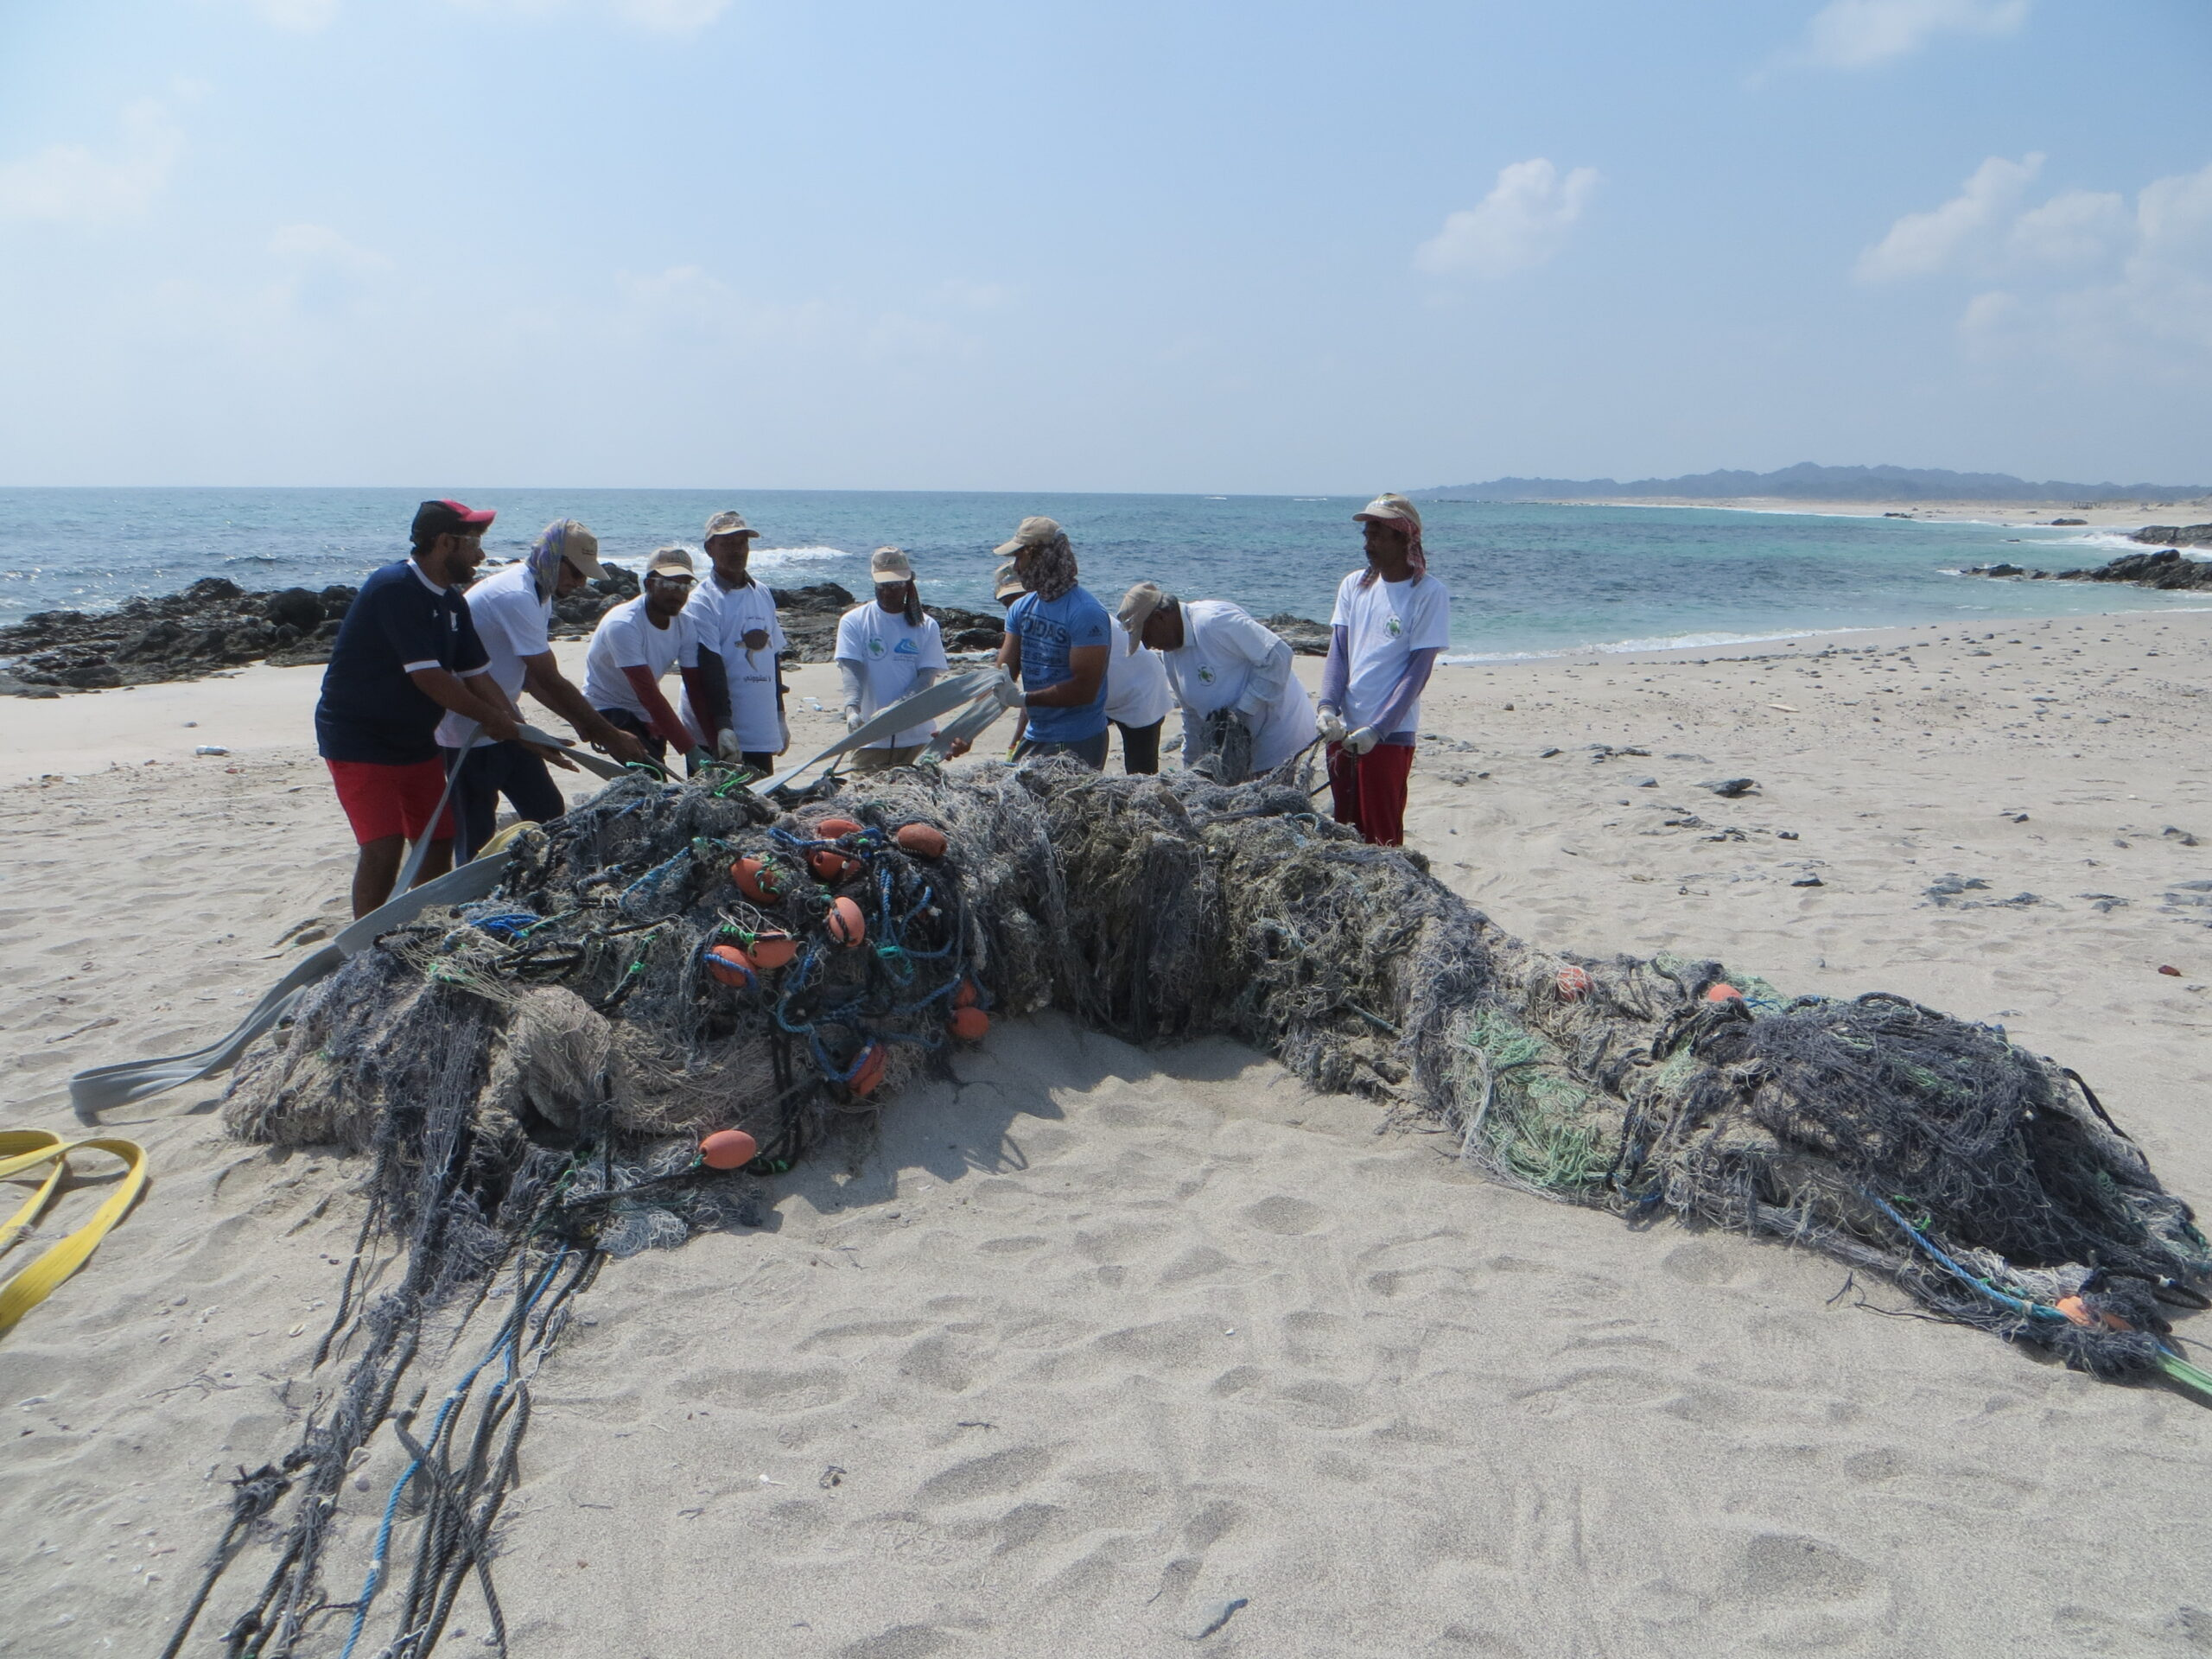 To Ease COVID-19 Impact, Groups Award Emergency Funding to Protect Nesting Sea Turtles